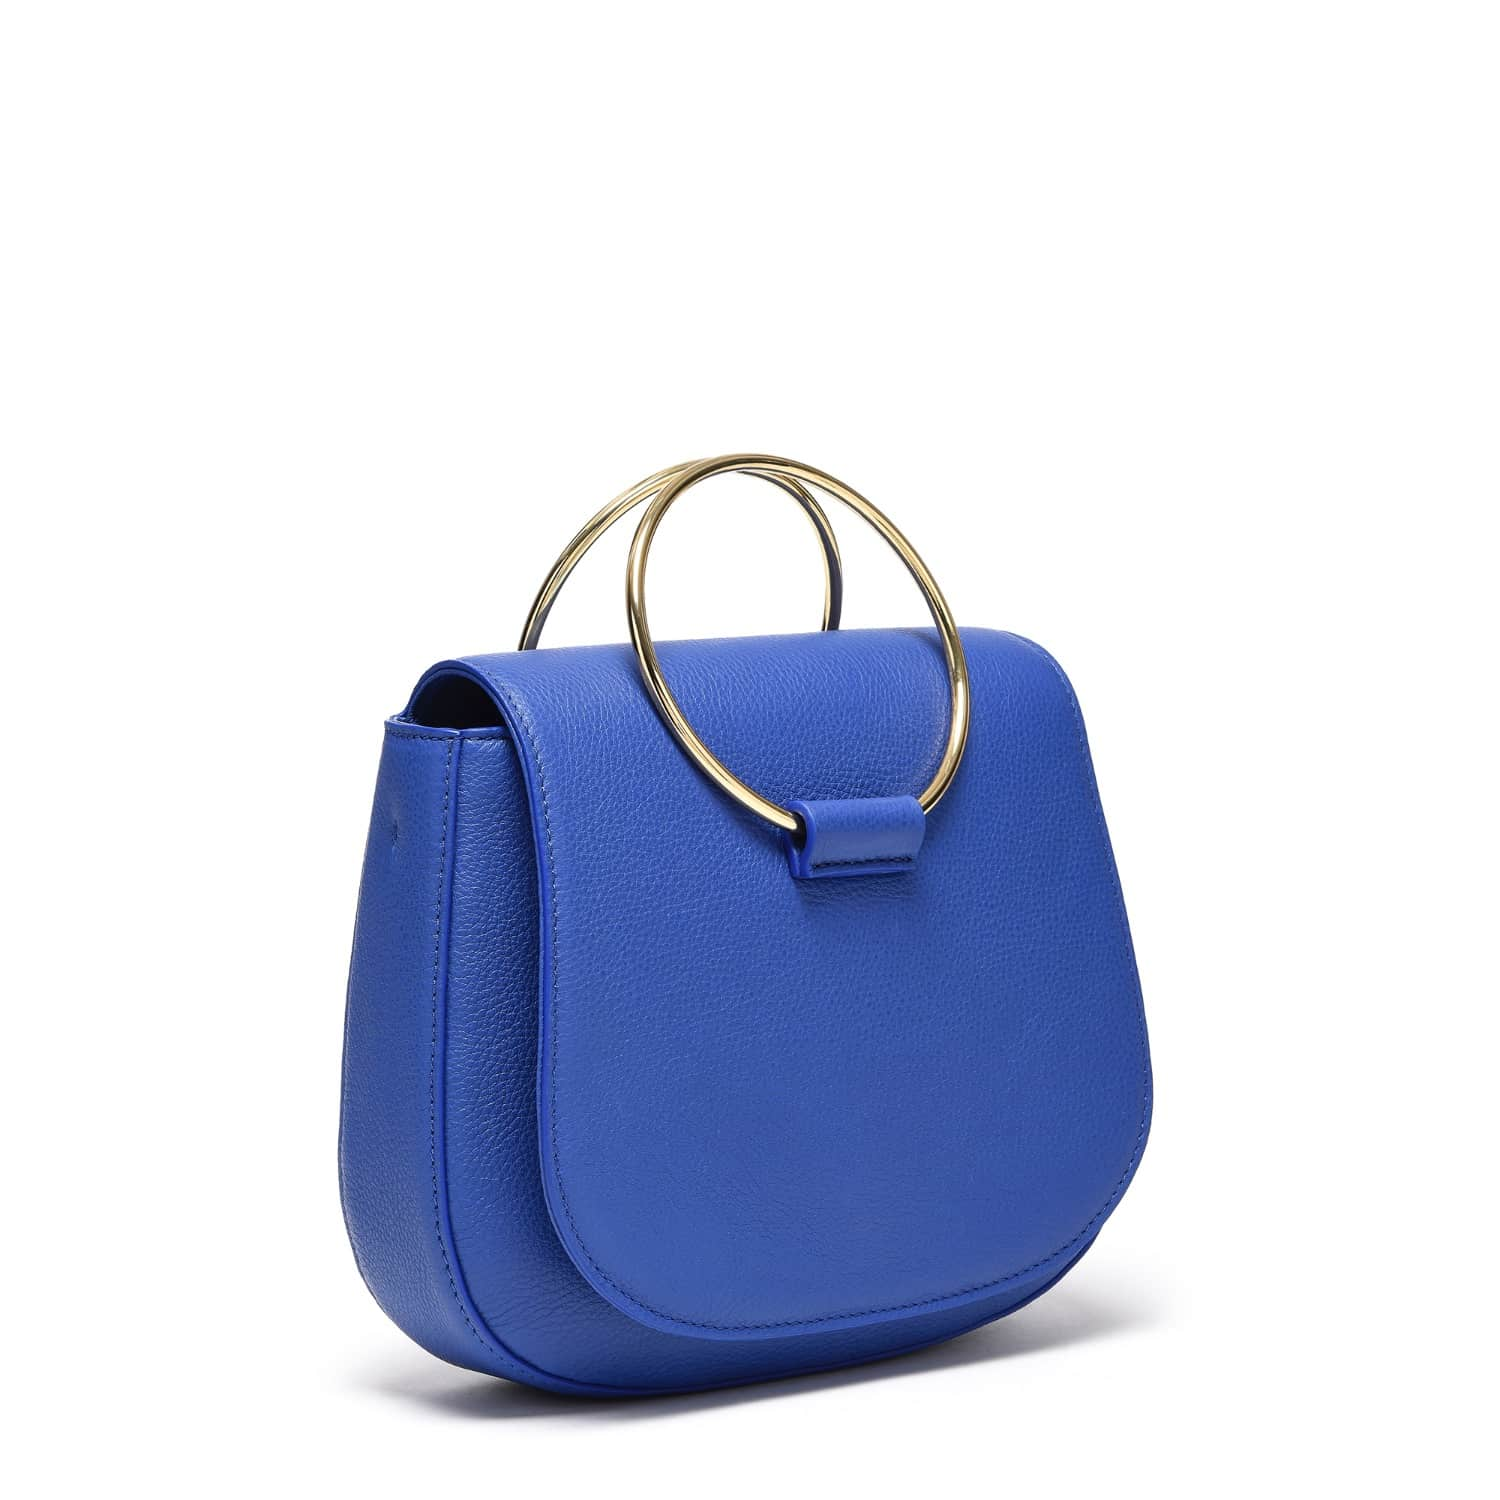 Thacker Sabine Saddlebag in Bluebird Limited Edition Cheap Online hvrqCy